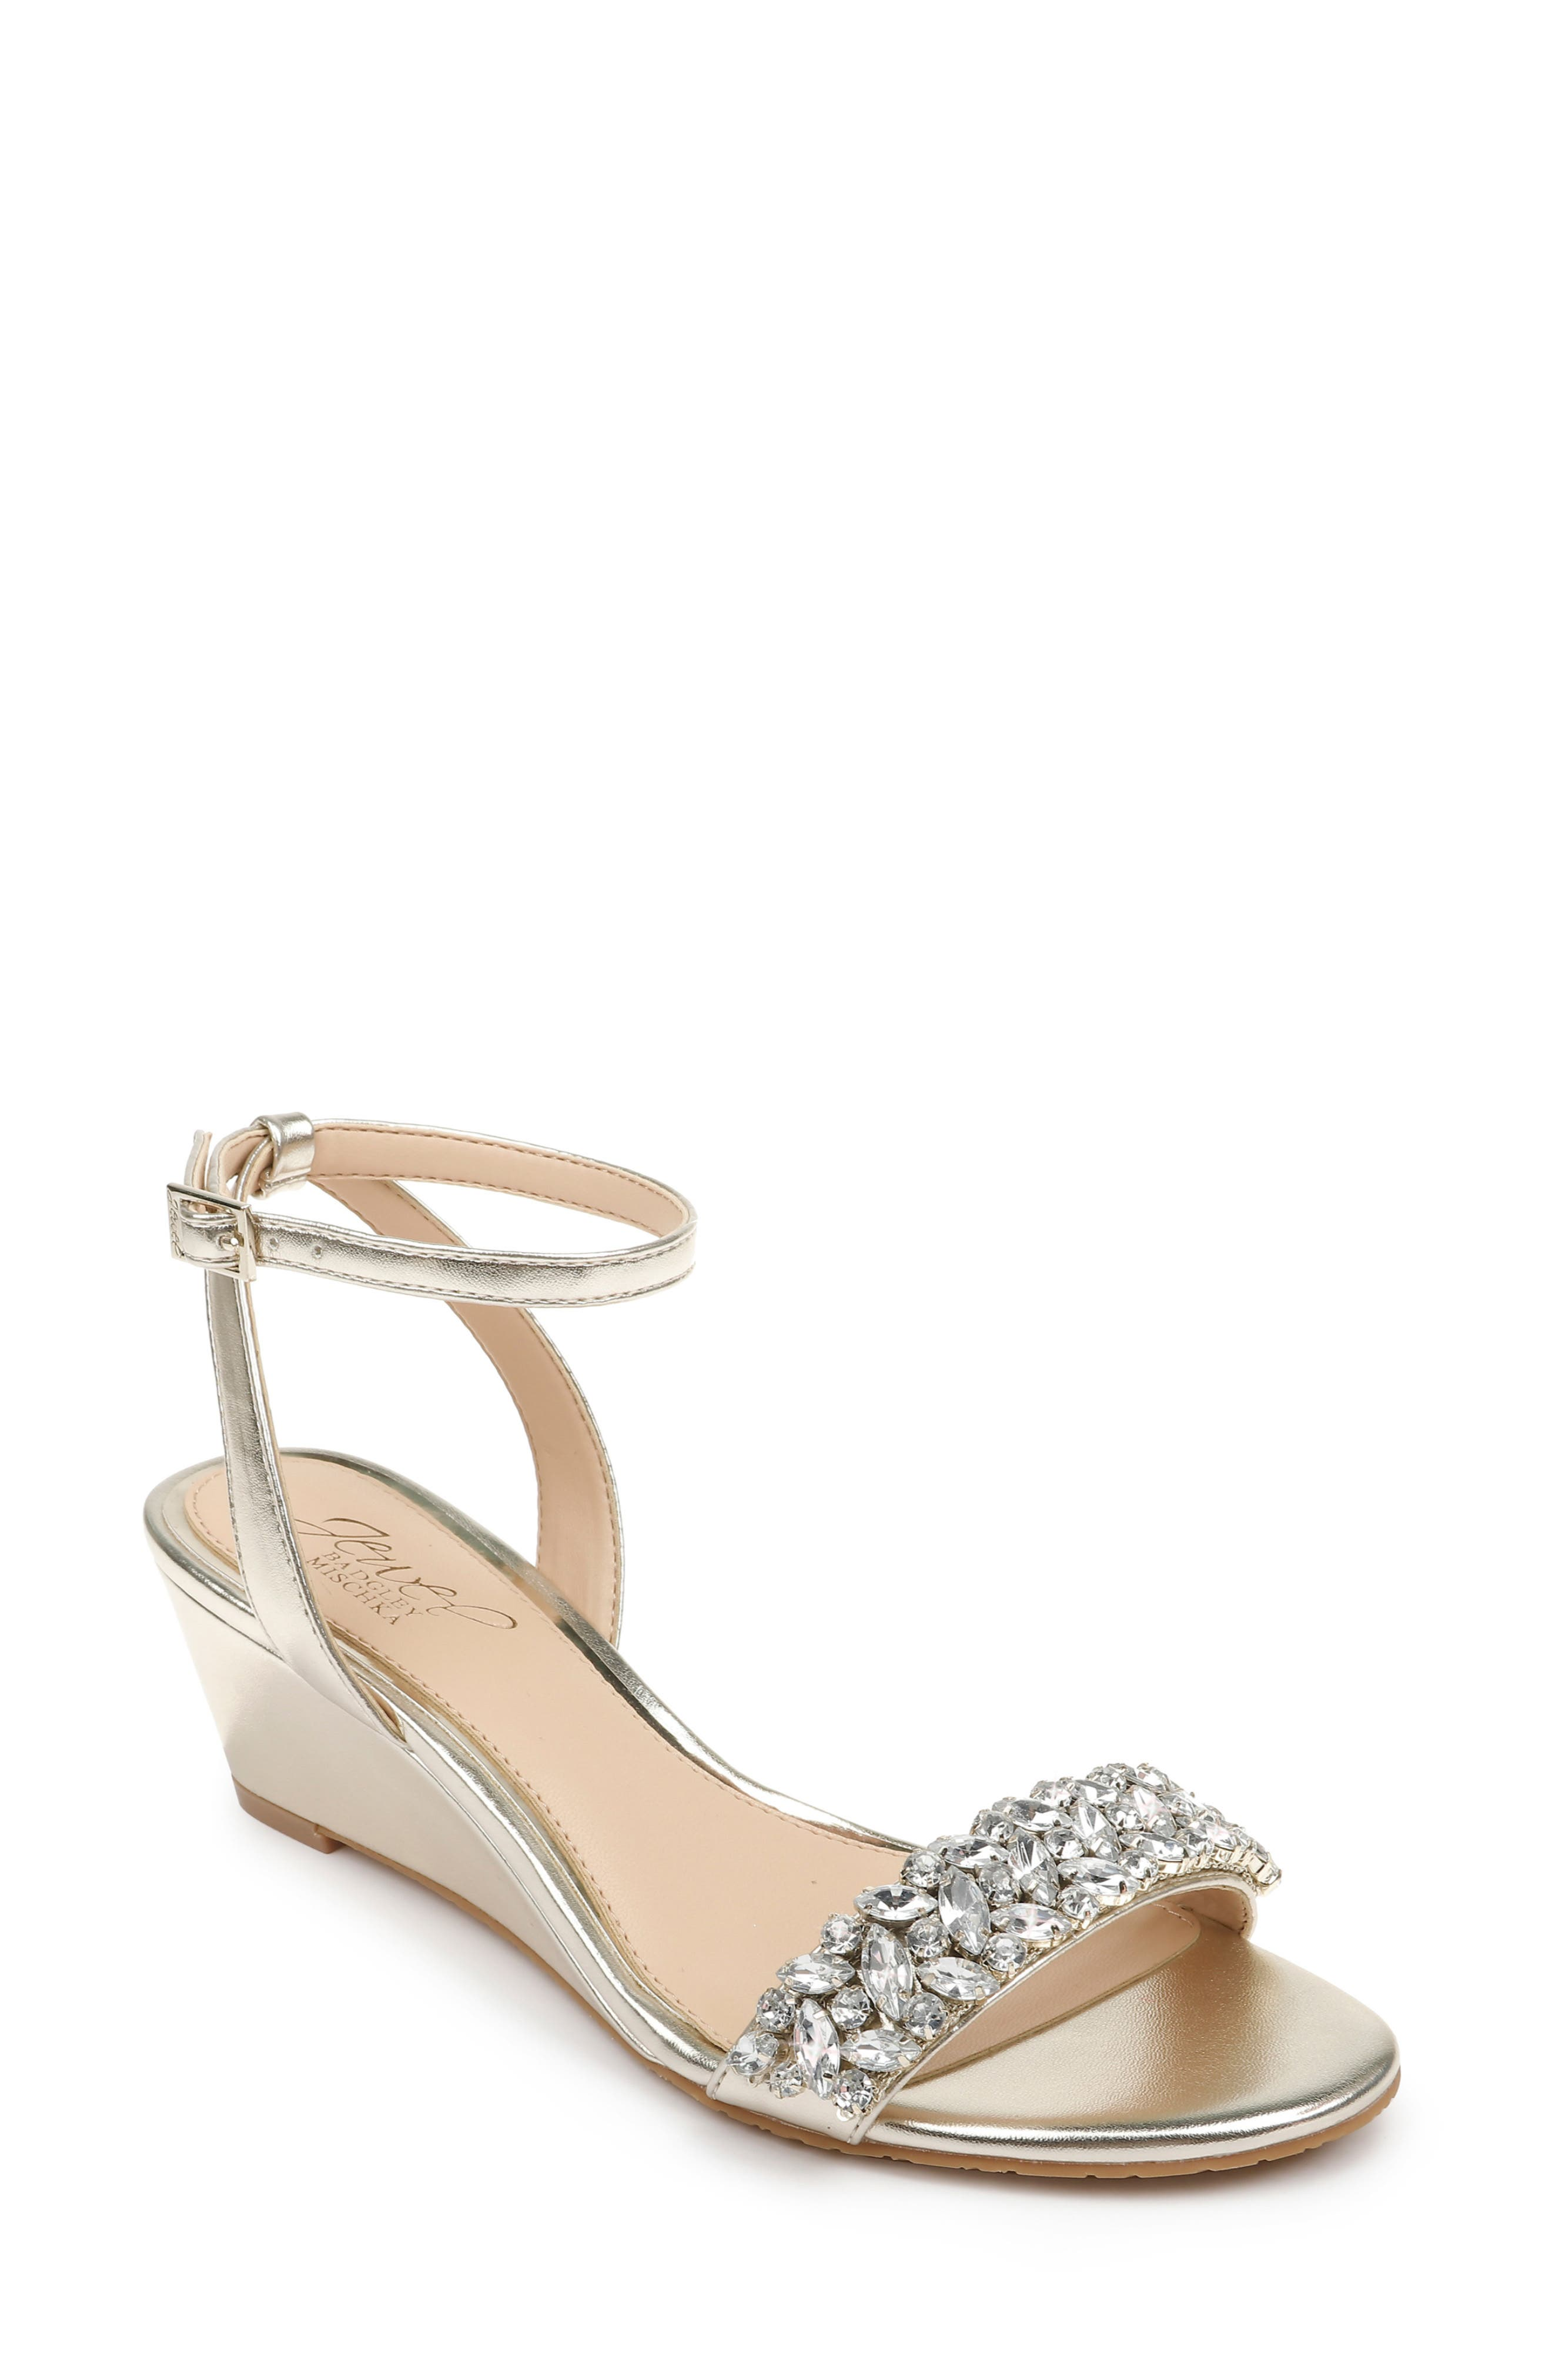 Sparkling crystals embellish the toe of a glamorous wedge sandal secured by a svelte strap at the ankle. Style Name: Jewel Badgley Mischka Bellevue Ankle Strap Wedge Sandal (Women). Style Number: 5959479 4. Available in stores.